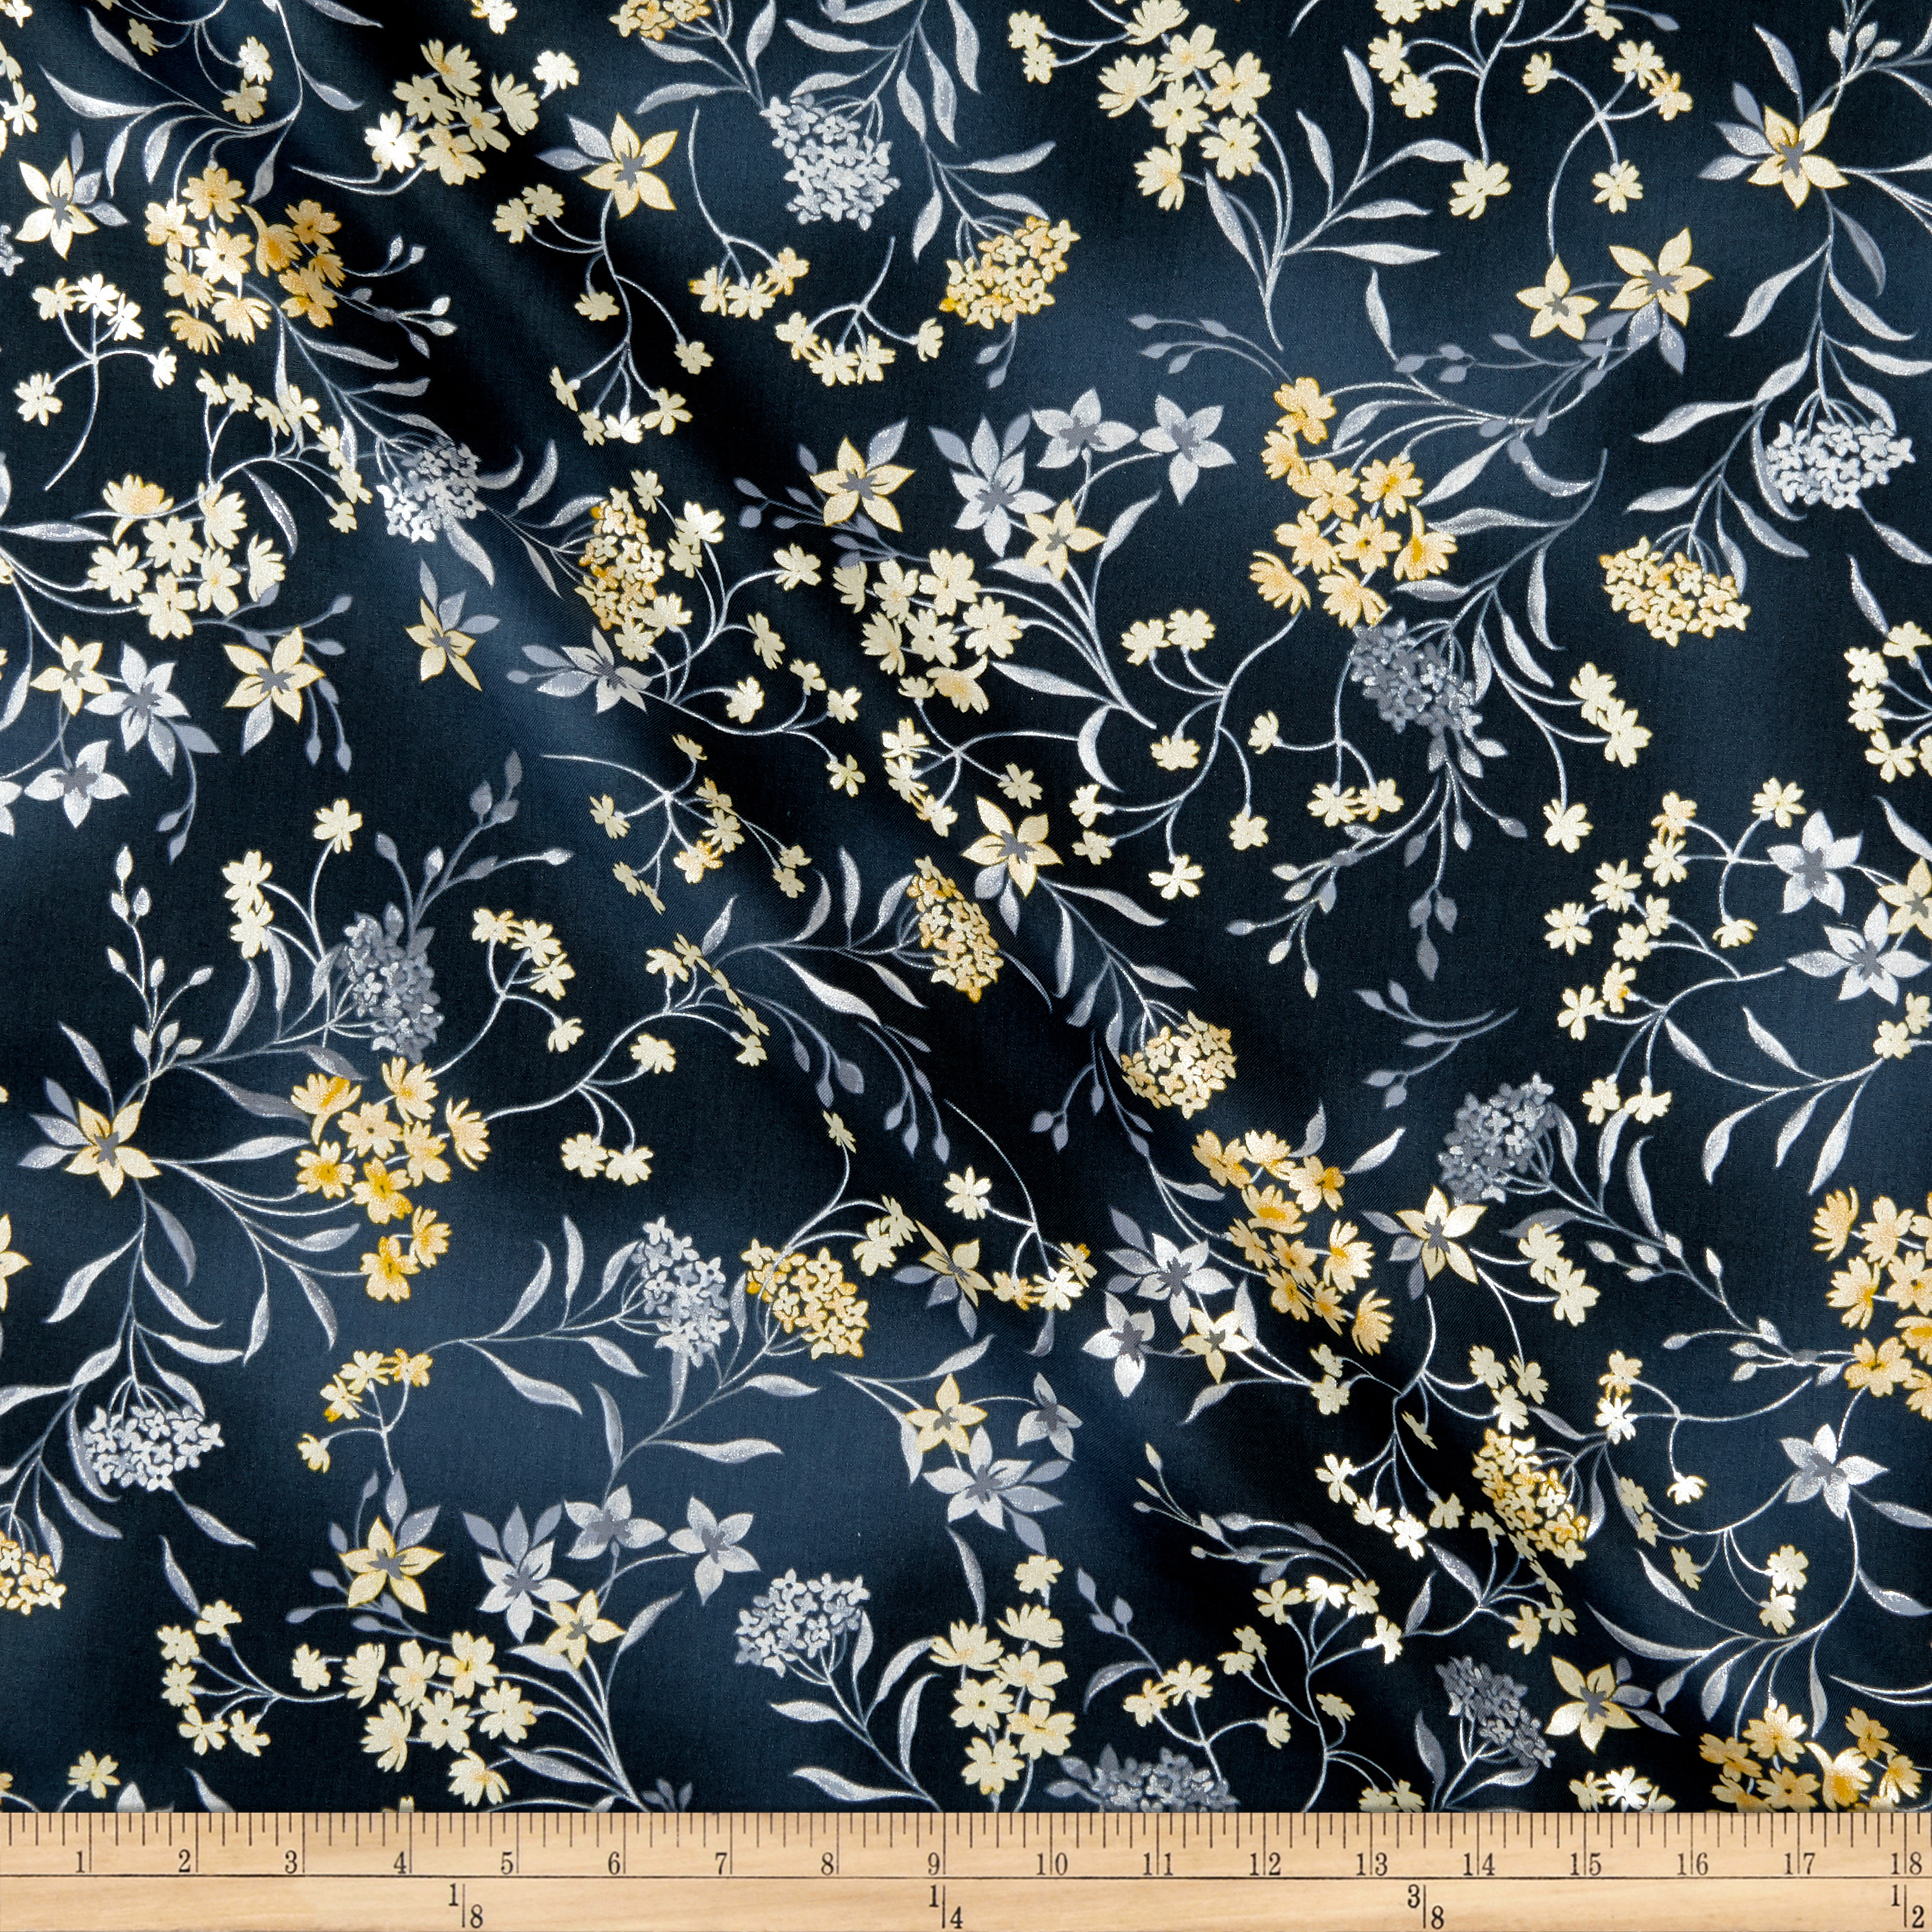 INOpets.com Anything for Pets Parents & Their Pets Kanvas Limoncello Garden CharcoalGray Fabric